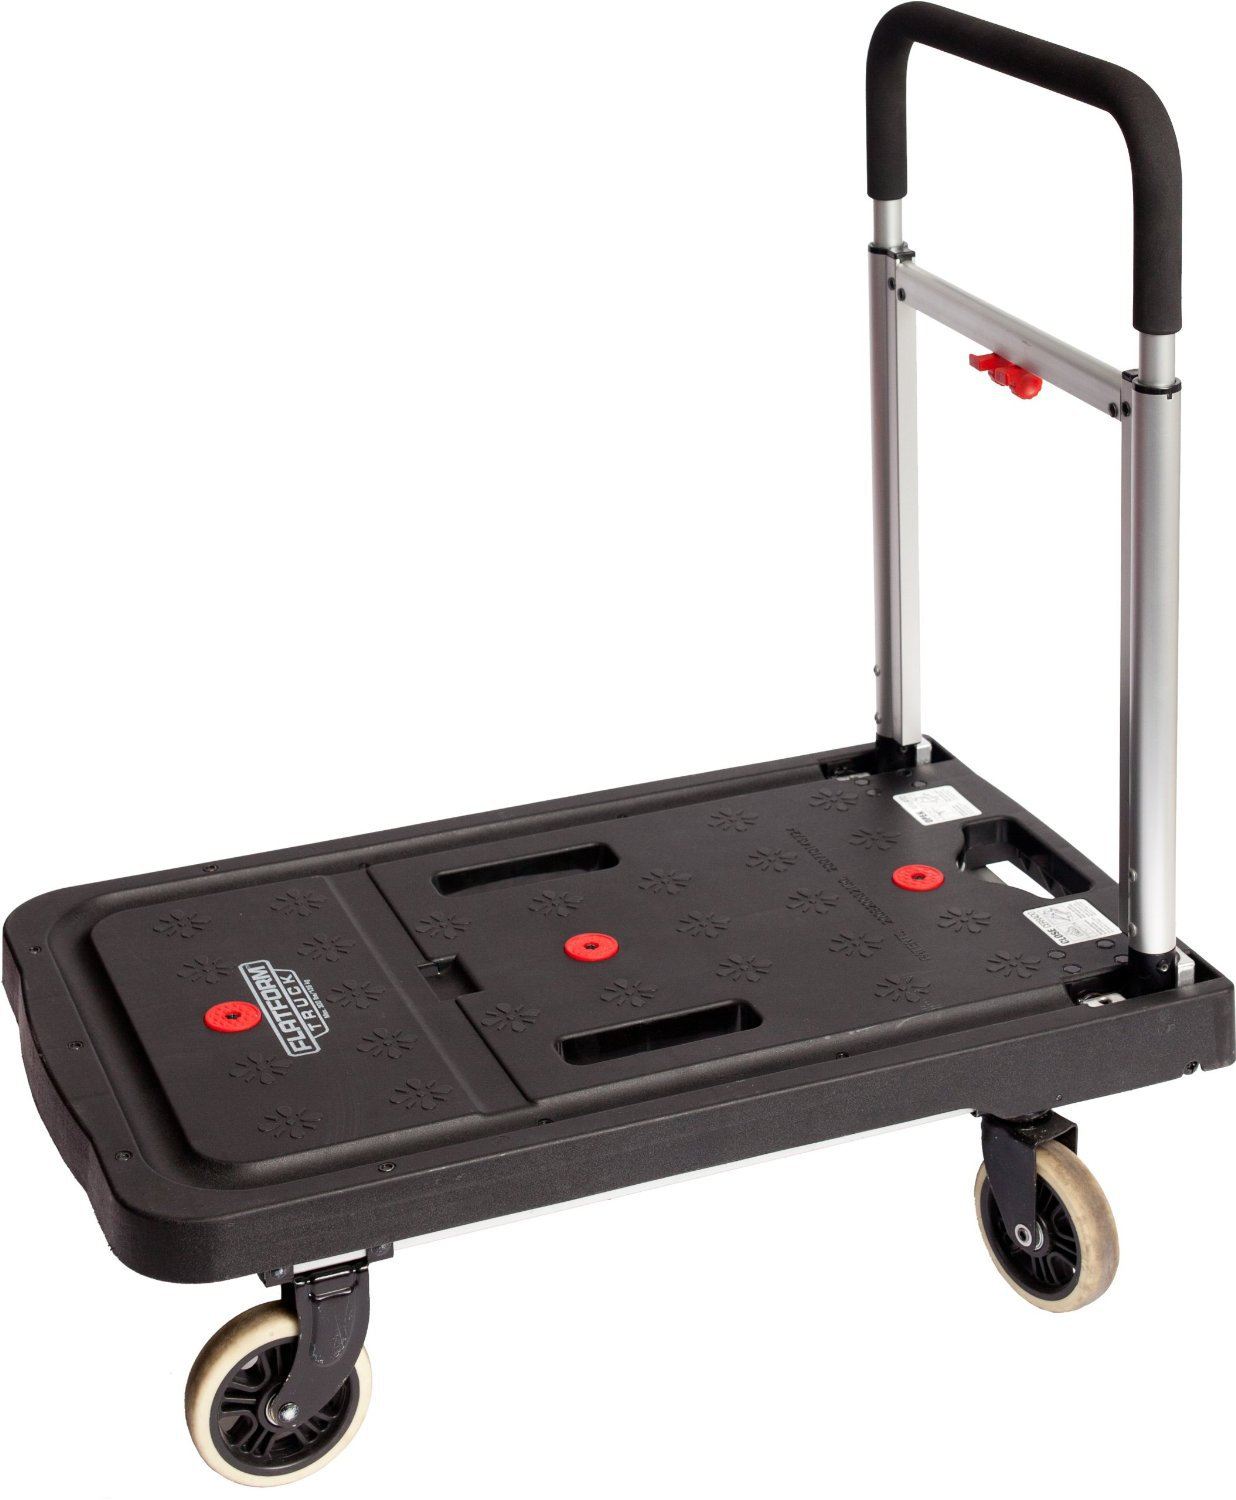 Folding Dolly Cart Office Furniture Utility Rolling Move